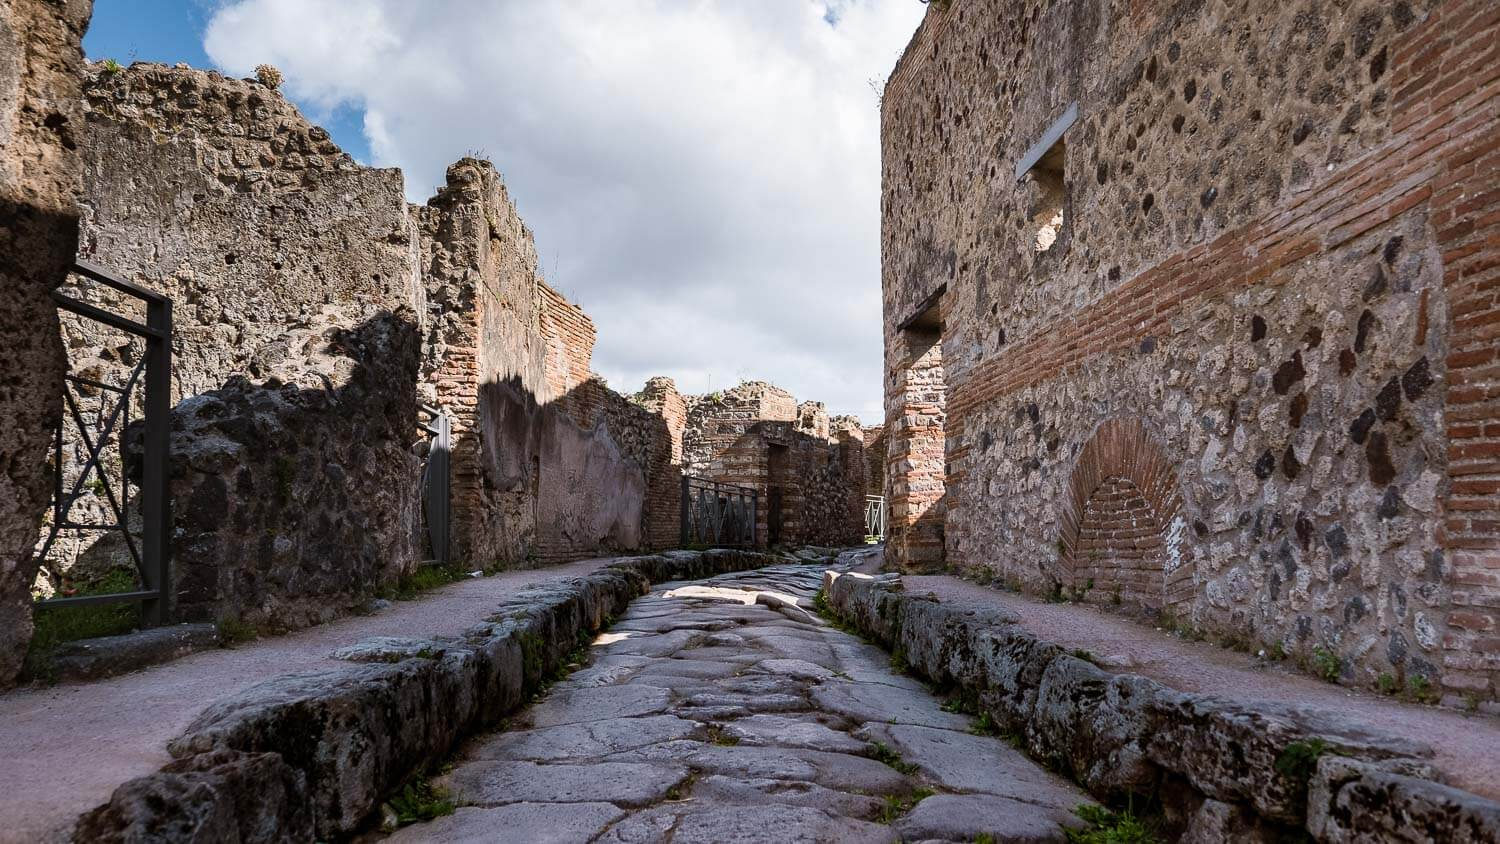 """The one curved road in Pompeii. Travel photography and guide by © Natasha Lequepeys for """"And Then I Met Yoko"""". #pompeii #italy #fujifilm #travelphotography"""